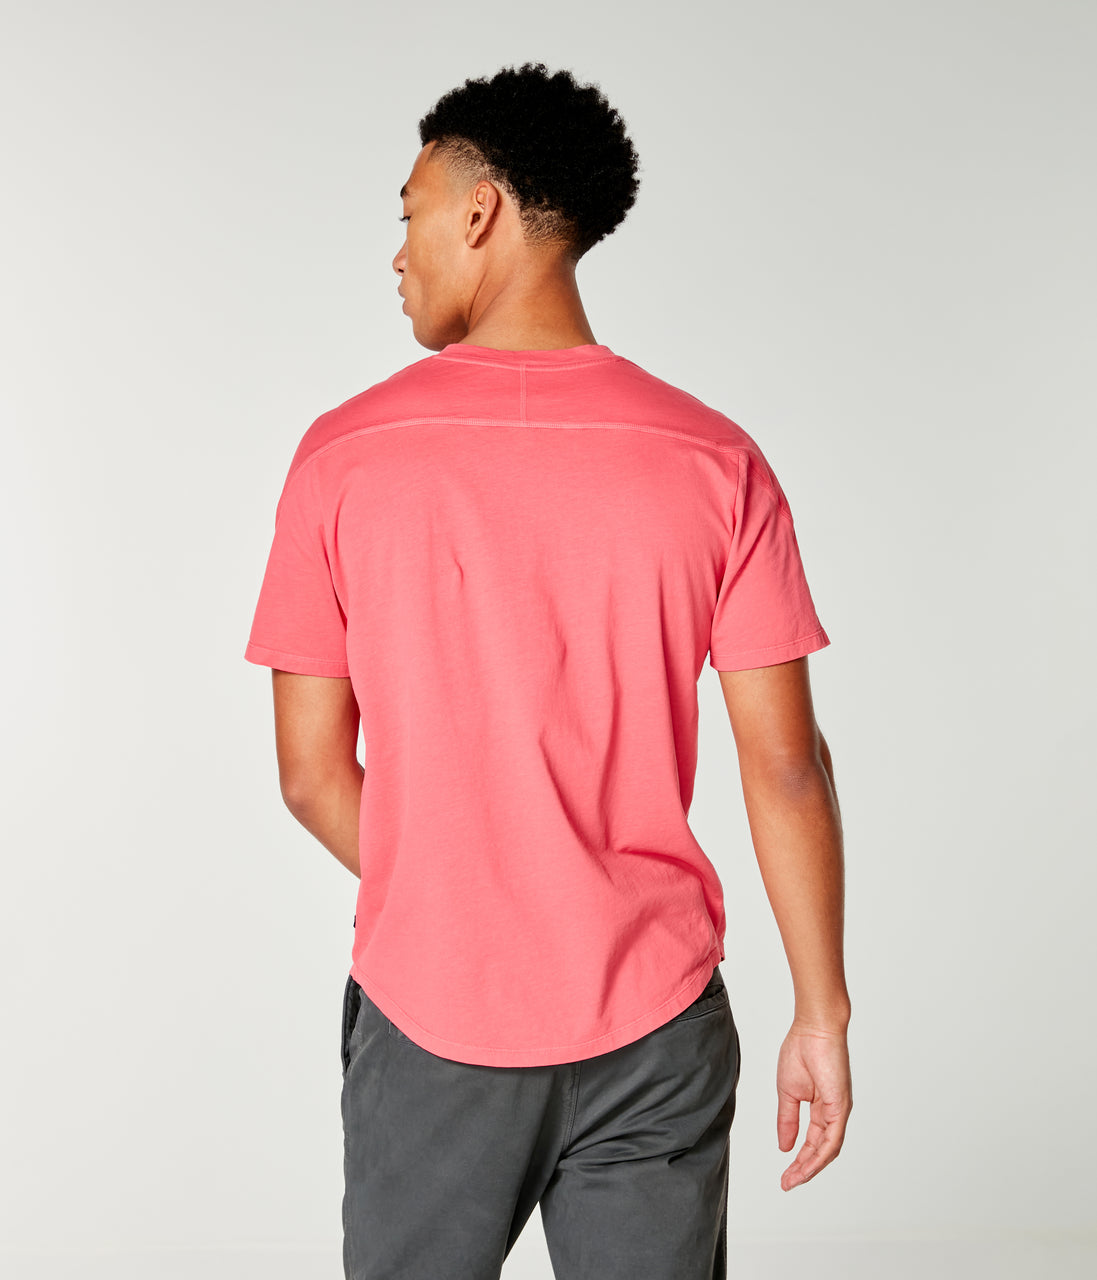 Premium Cotton Jersey Notch Neck Crew - Watermelon - Good Man Brand - Premium Cotton Jersey Notch Neck Crew - Watermelon